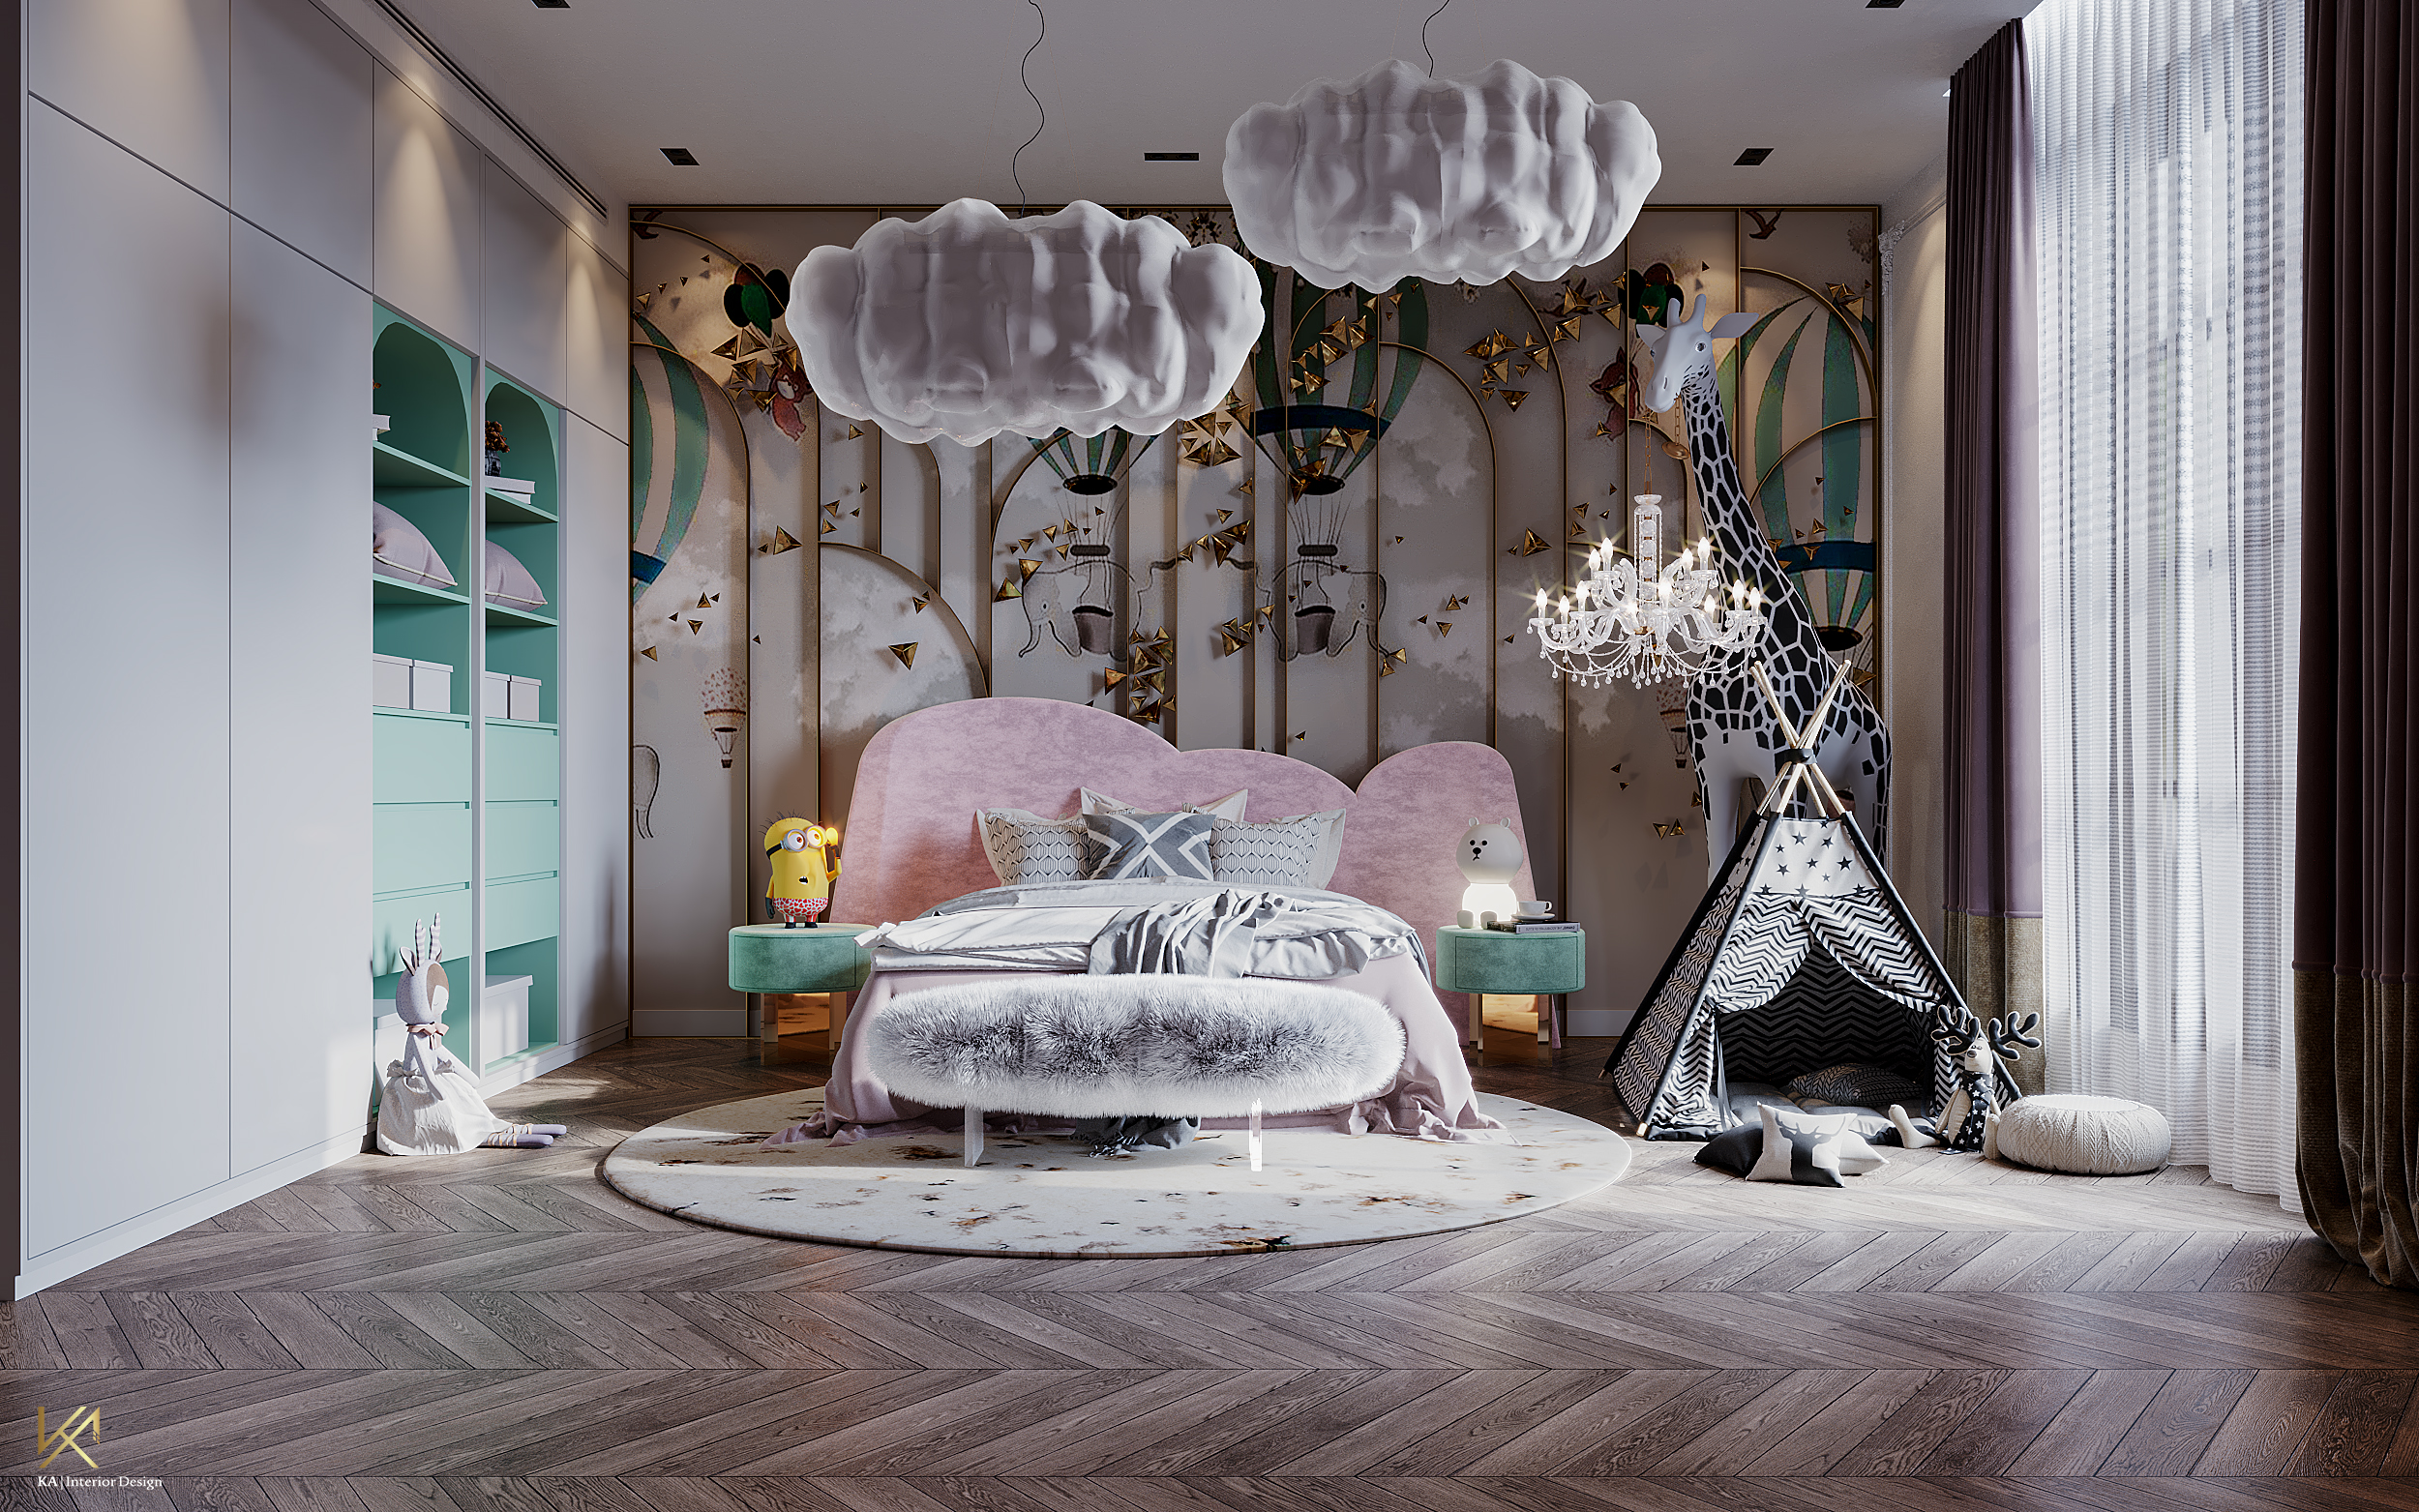 Luxury Girls Room: In a Cloudy Sky, be a golden star-3